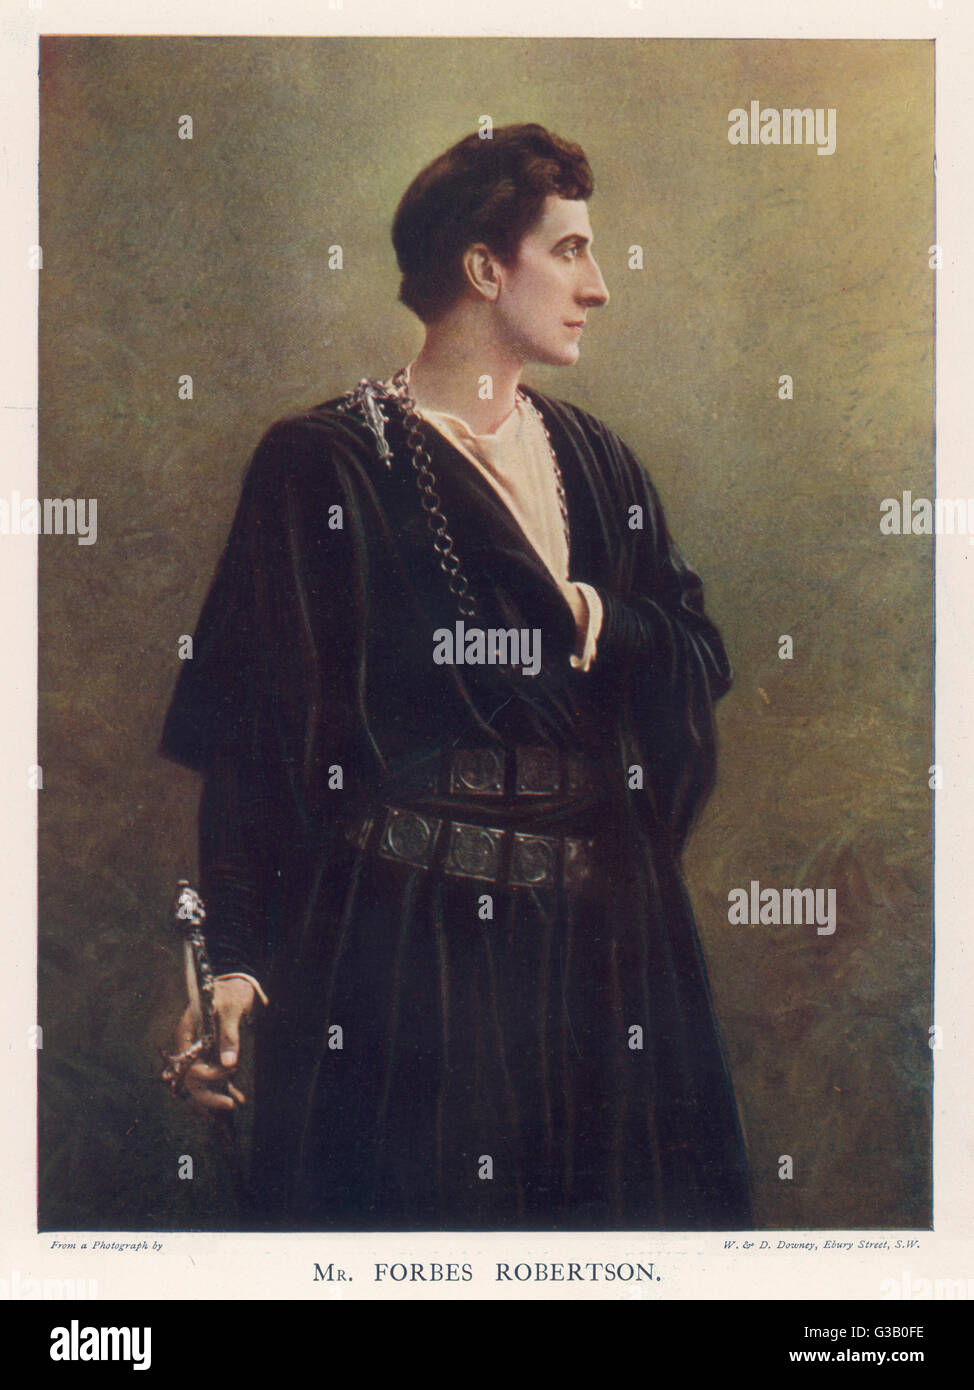 (Sir) JOHNSTON  FORBES-ROBERTSON  English actor-manager  as Hamlet      Date: 1853 - 1937 - Stock Image